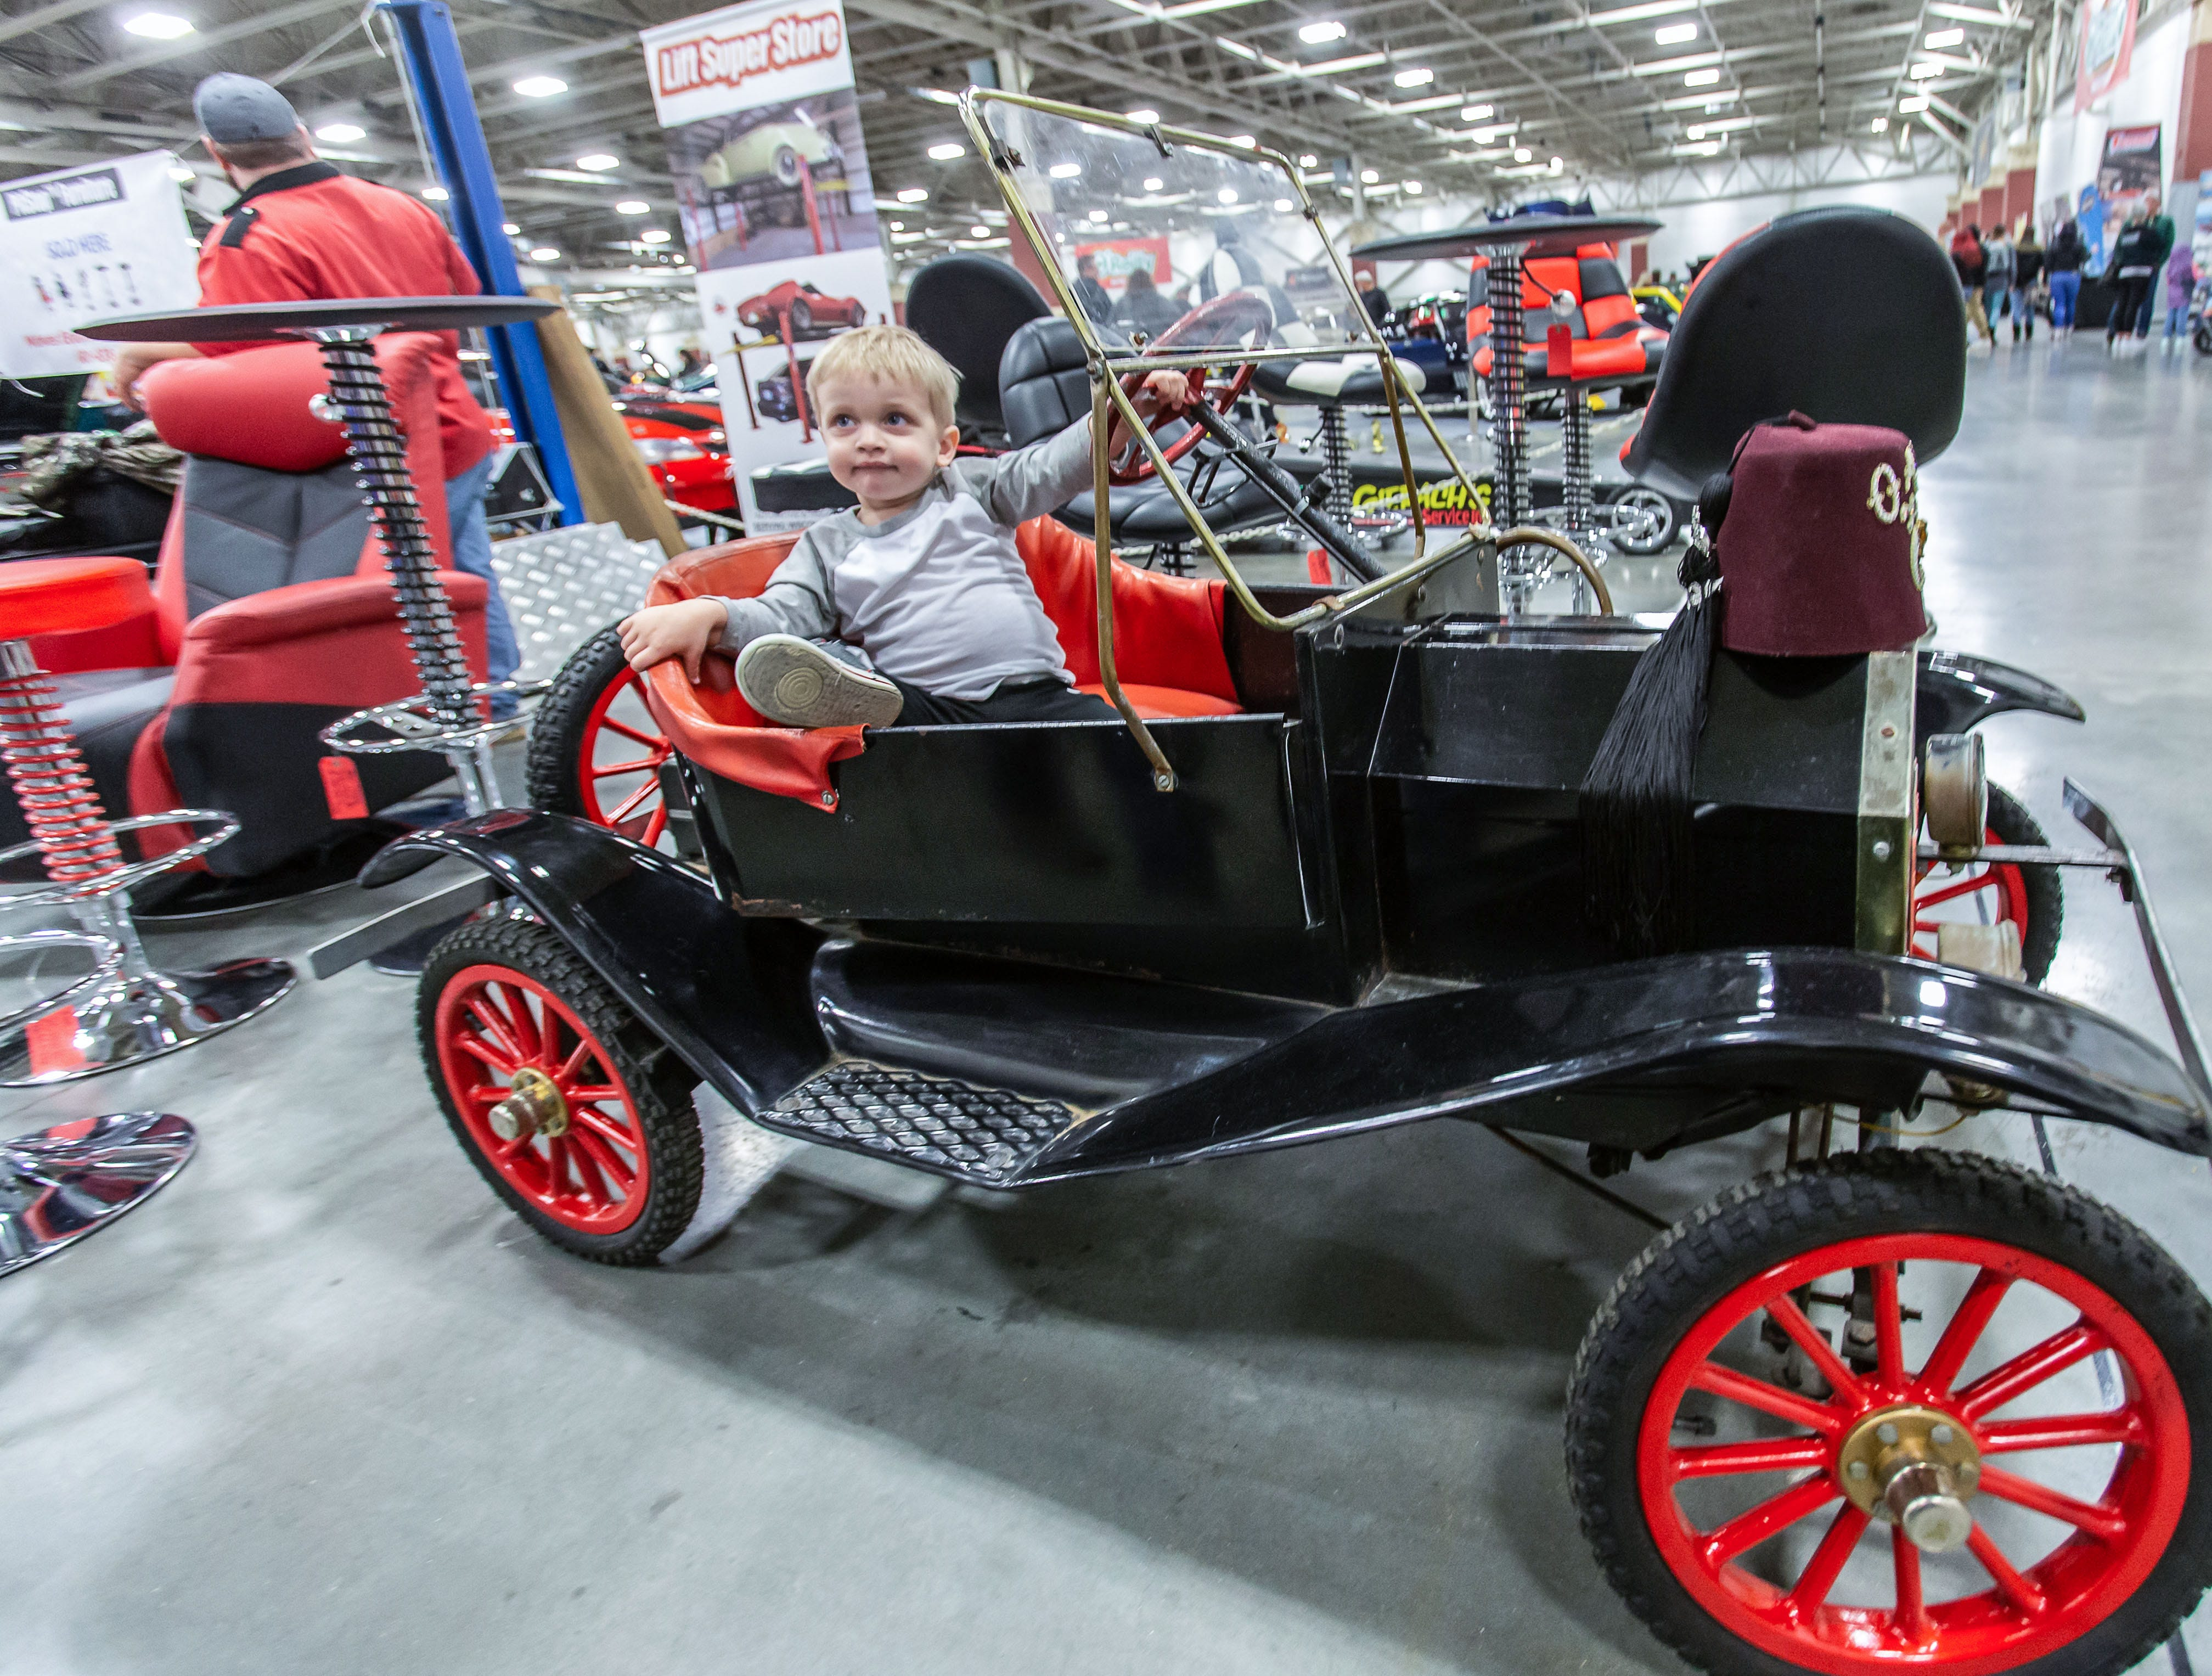 Two-year-old Cole Lampman of Oak Creek finds a suitable ride during the 57th annual O'Reilly Auto Parts World of Wheels at State Fair Park in West Allis on Saturday, Feb. 23, 2019. The event features over 300 vehicles, celebrity appearances, vendors, a charity auction and more.